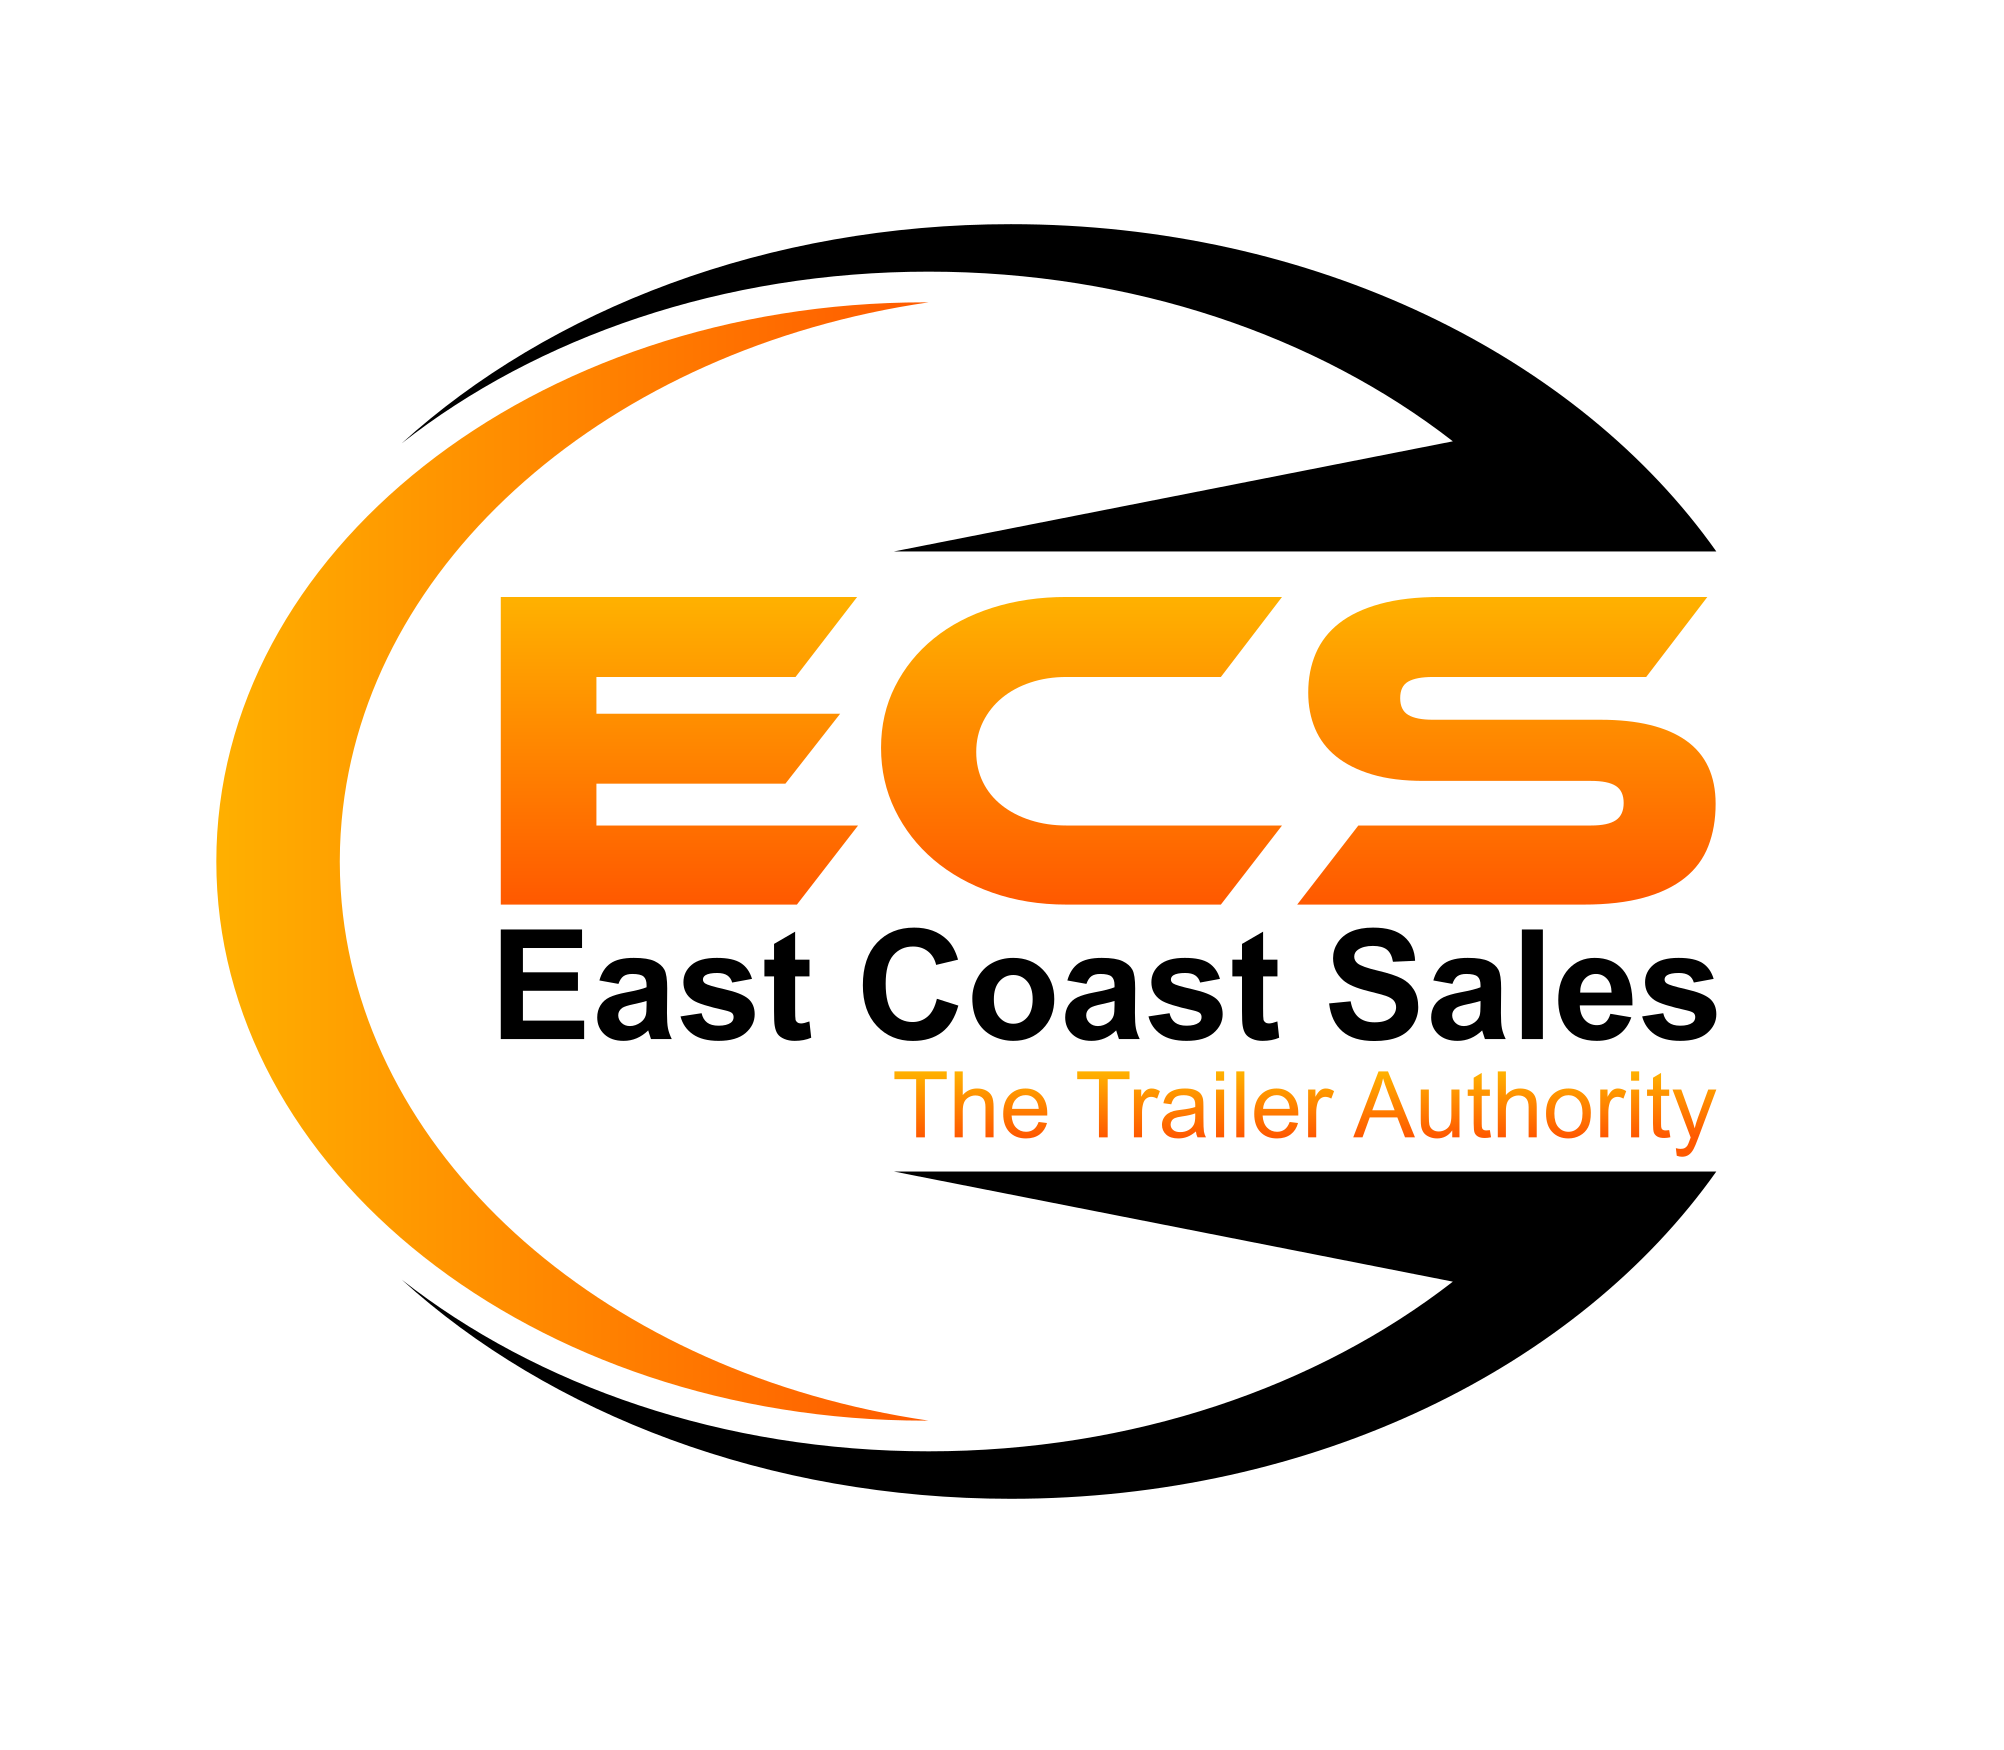 East Coast Sales